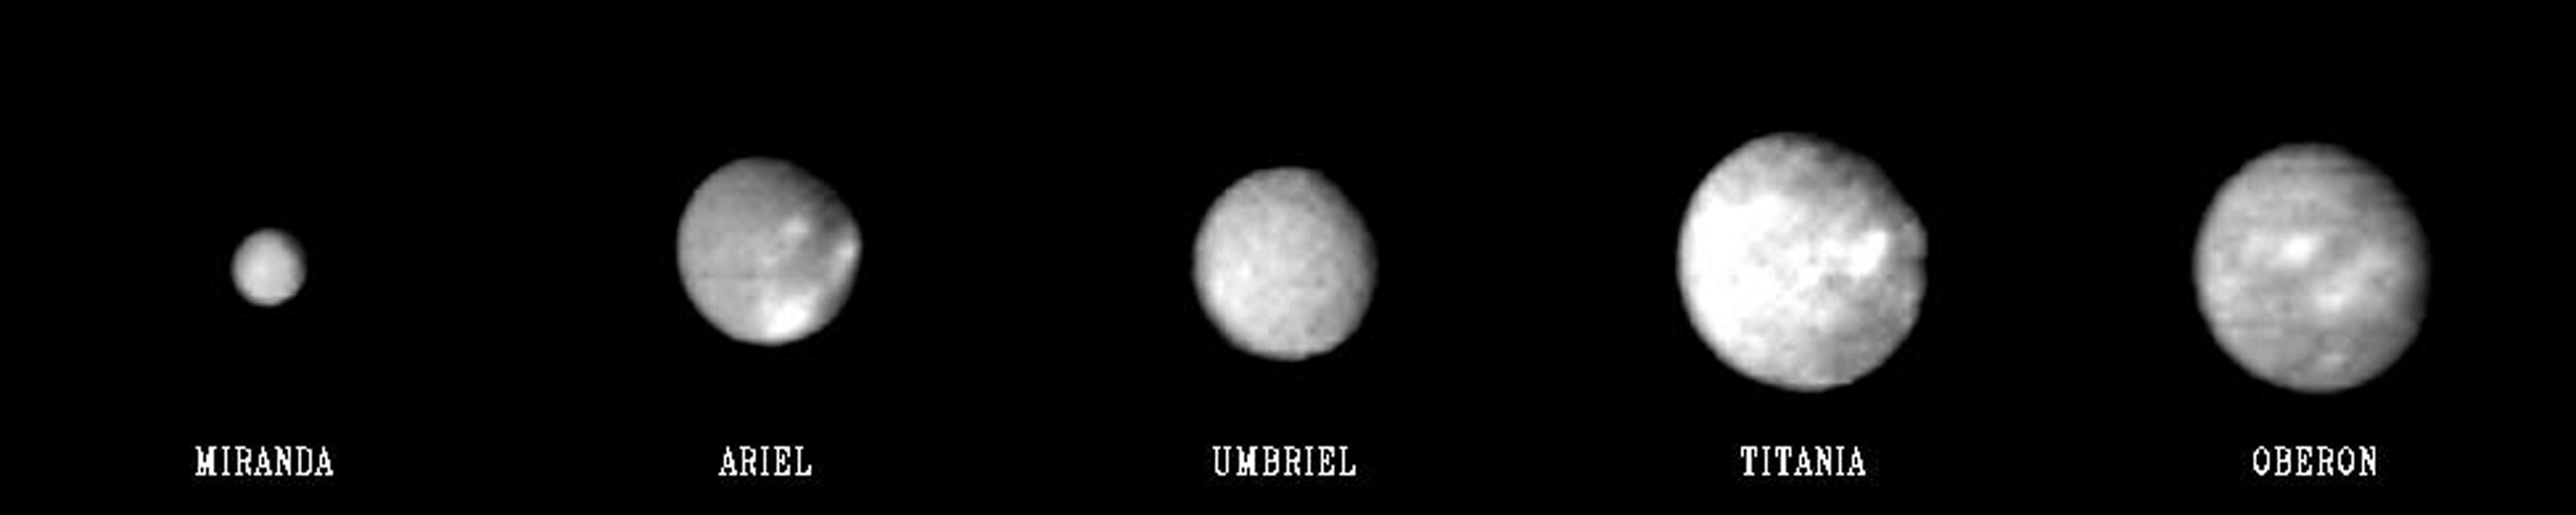 This 'family portrait' of Uranus' five largest moons was compiled from images sent back Jan. 20, 1986, by NASA's Voyager 2 spacecraft. Even in these distant views, the satellites exhibit distinct differences in appearance.